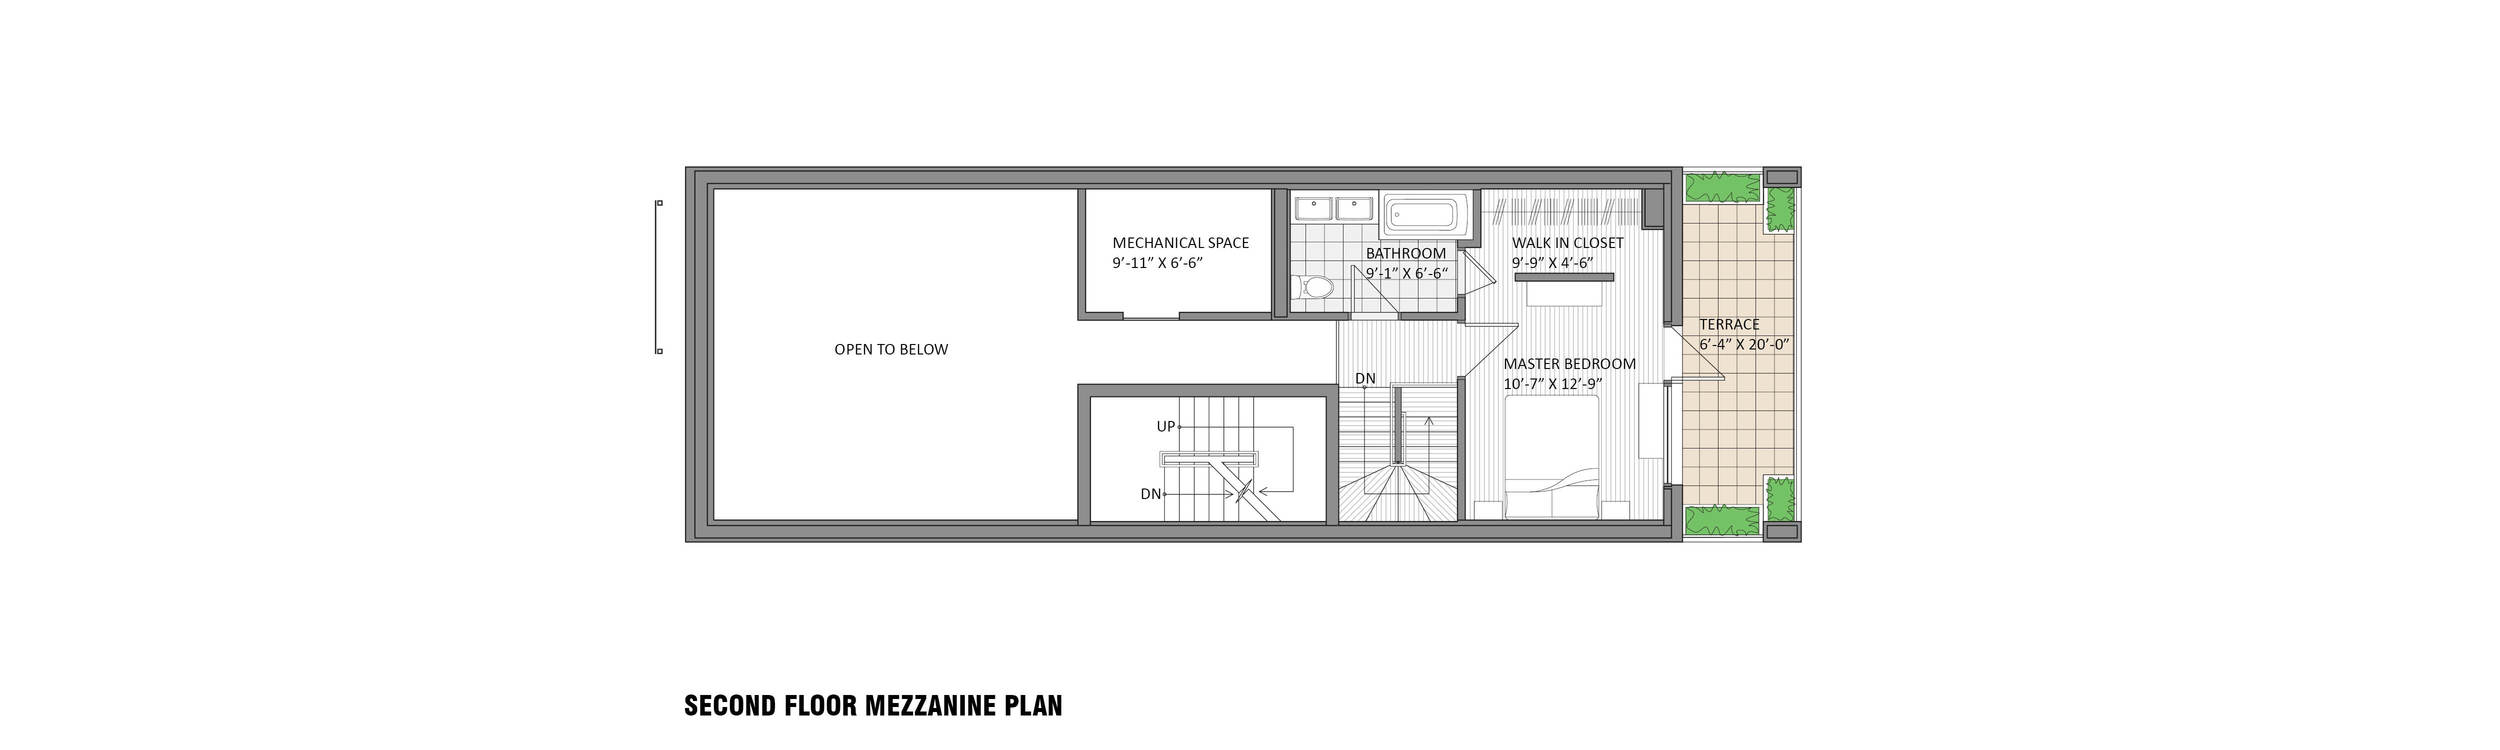 Floor Plan cropped_Website4.jpg